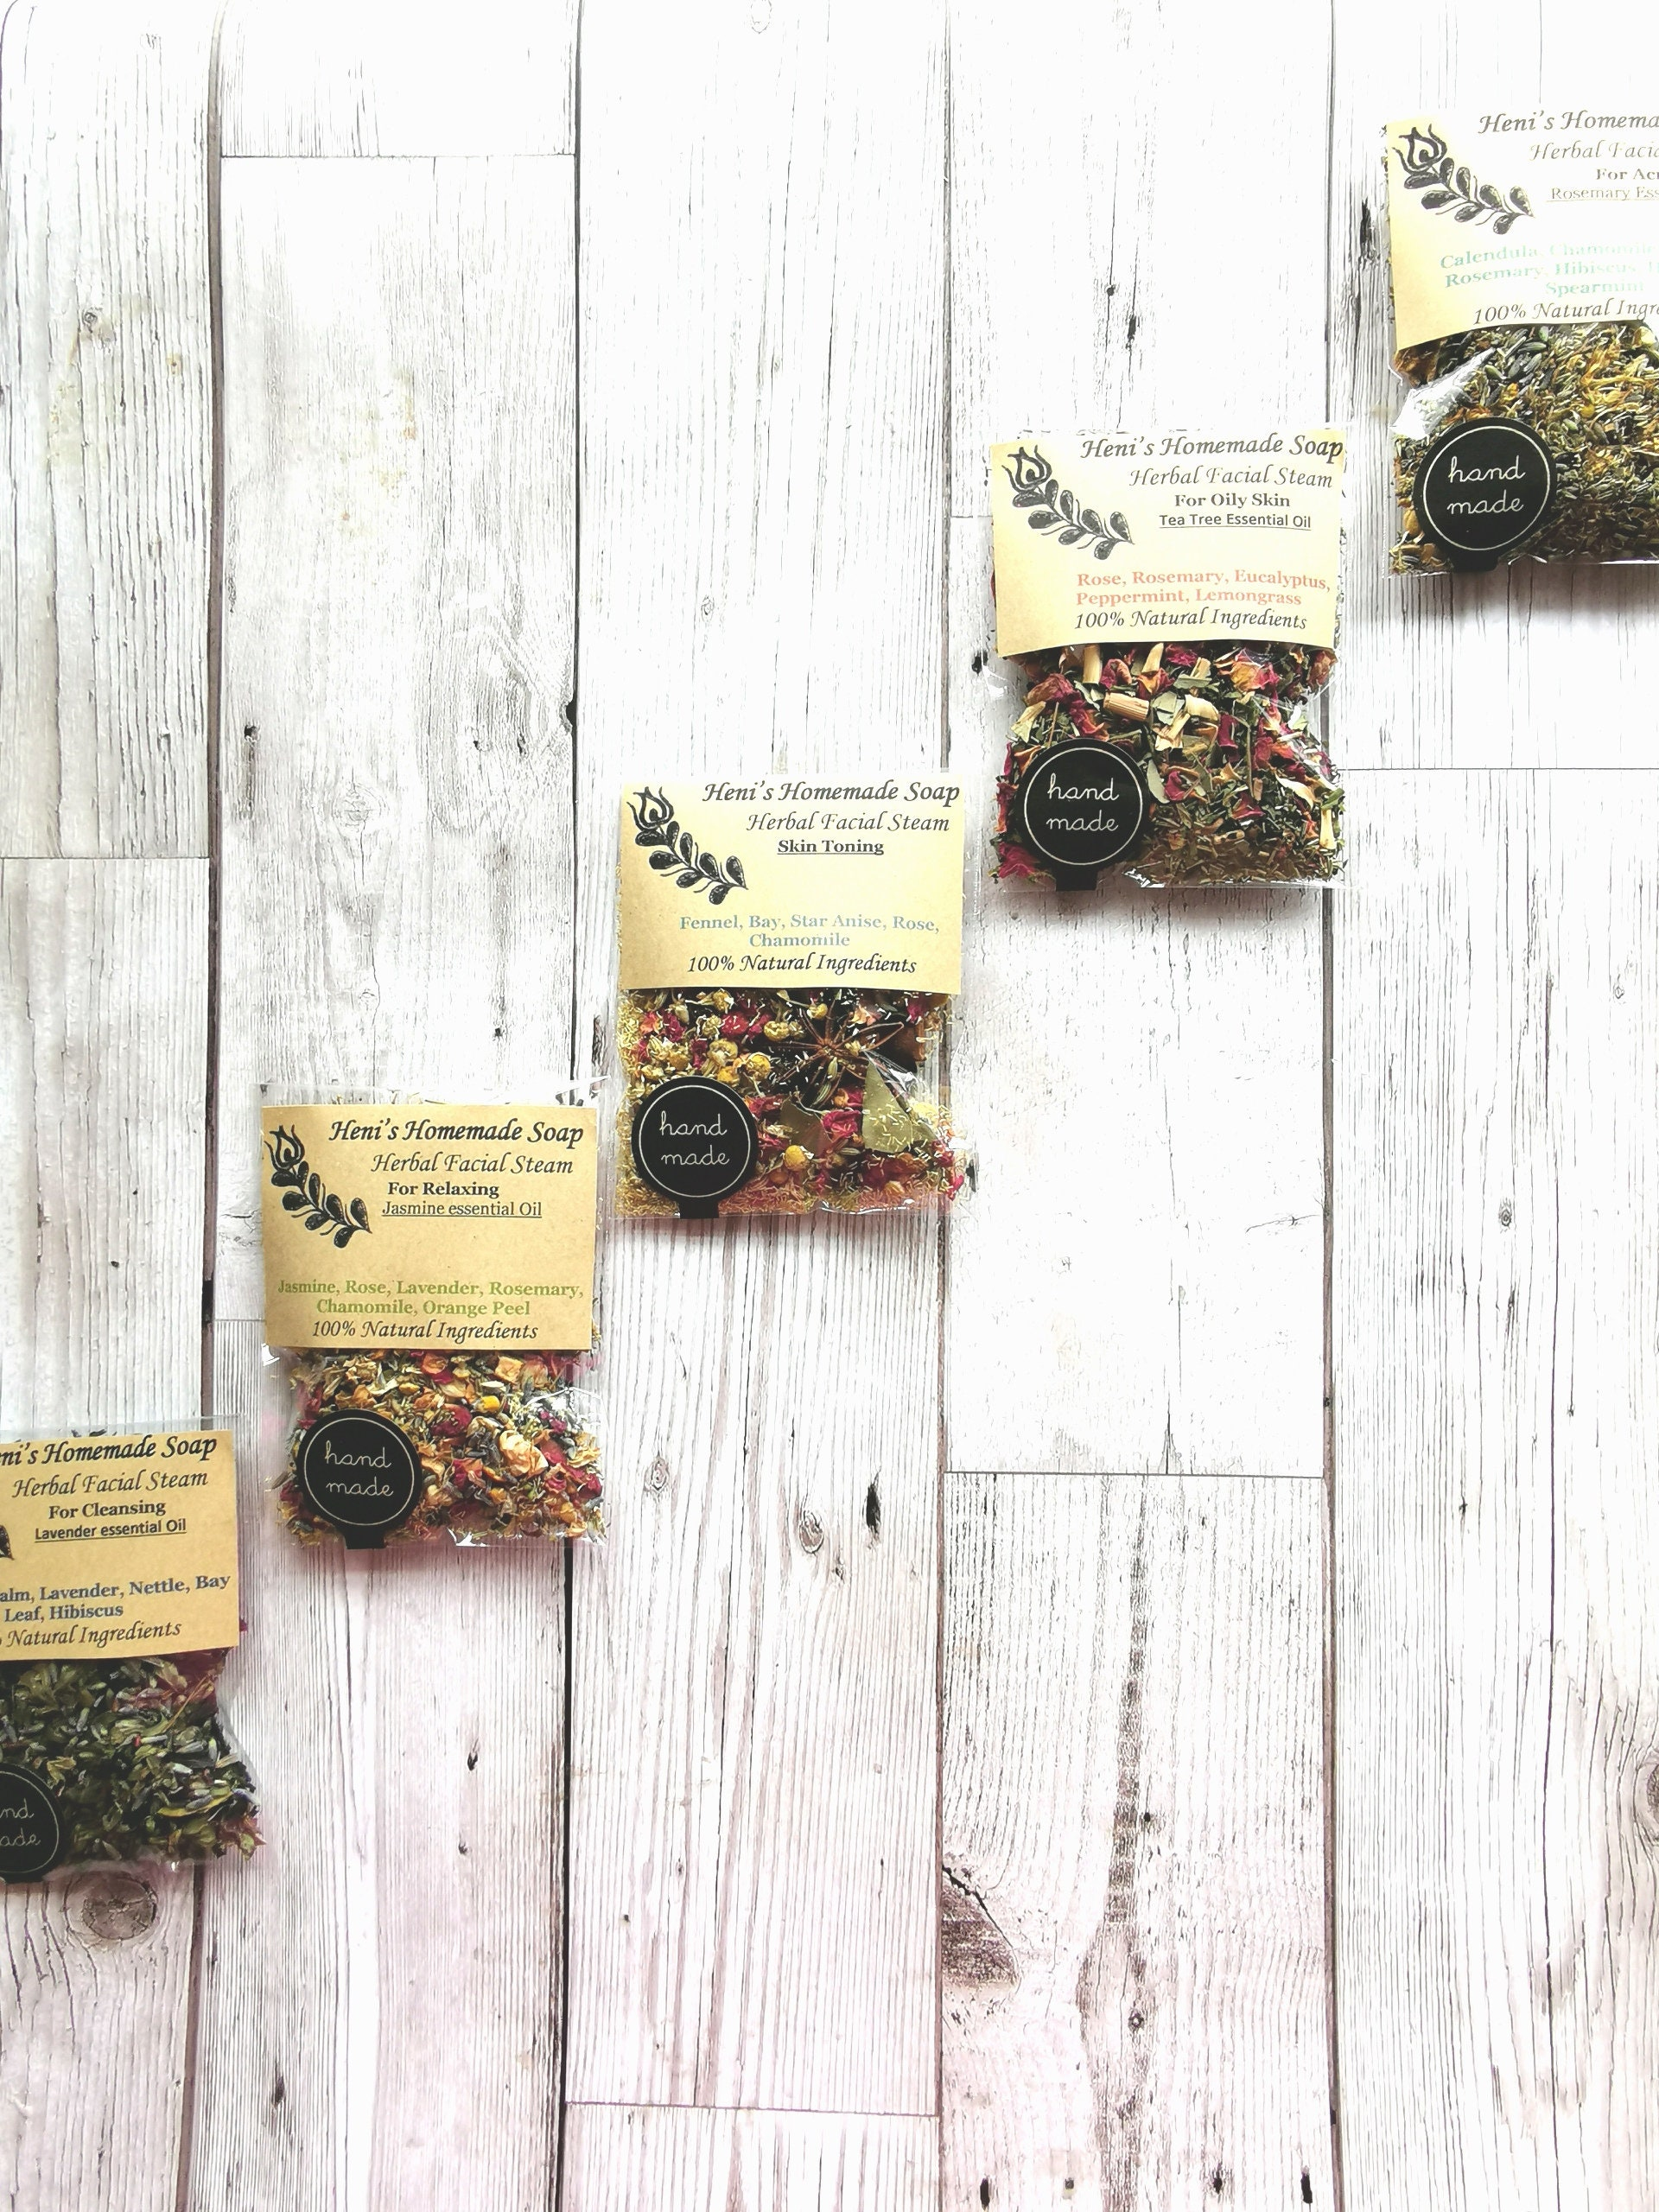 Herbal Facial Steam Bundle, 8 Botanical Face Steaming, Pore cleansing, Herb  steam Bundle, Mother's day, Acne treatment, Healing steam, Vegan